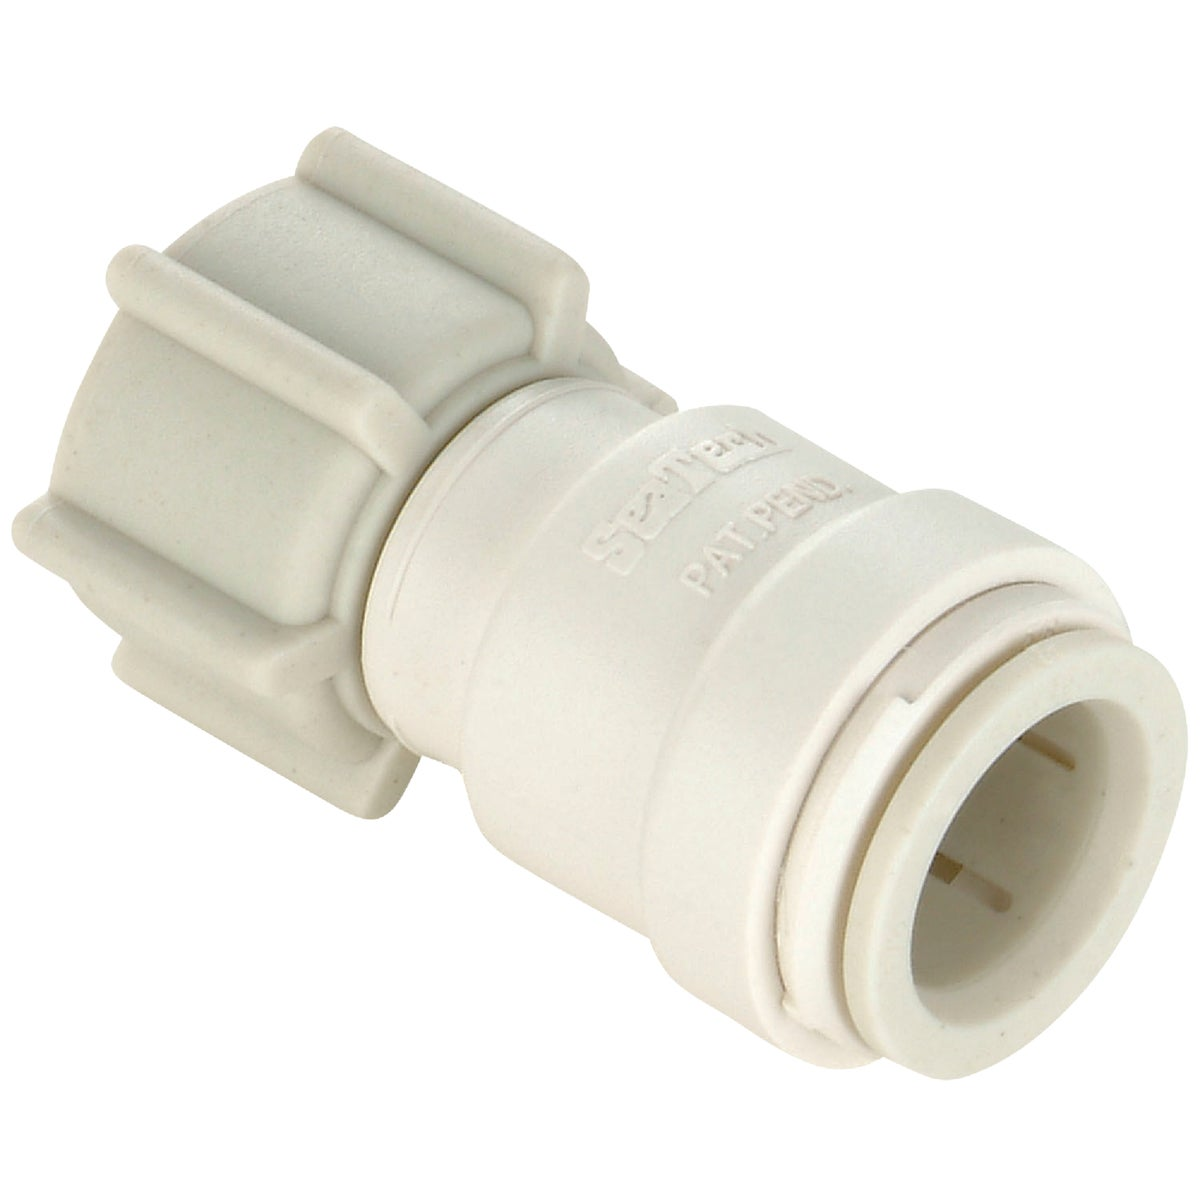 1/2CTSX1/2FPT ADAPTER - P-615 by Watts Pex